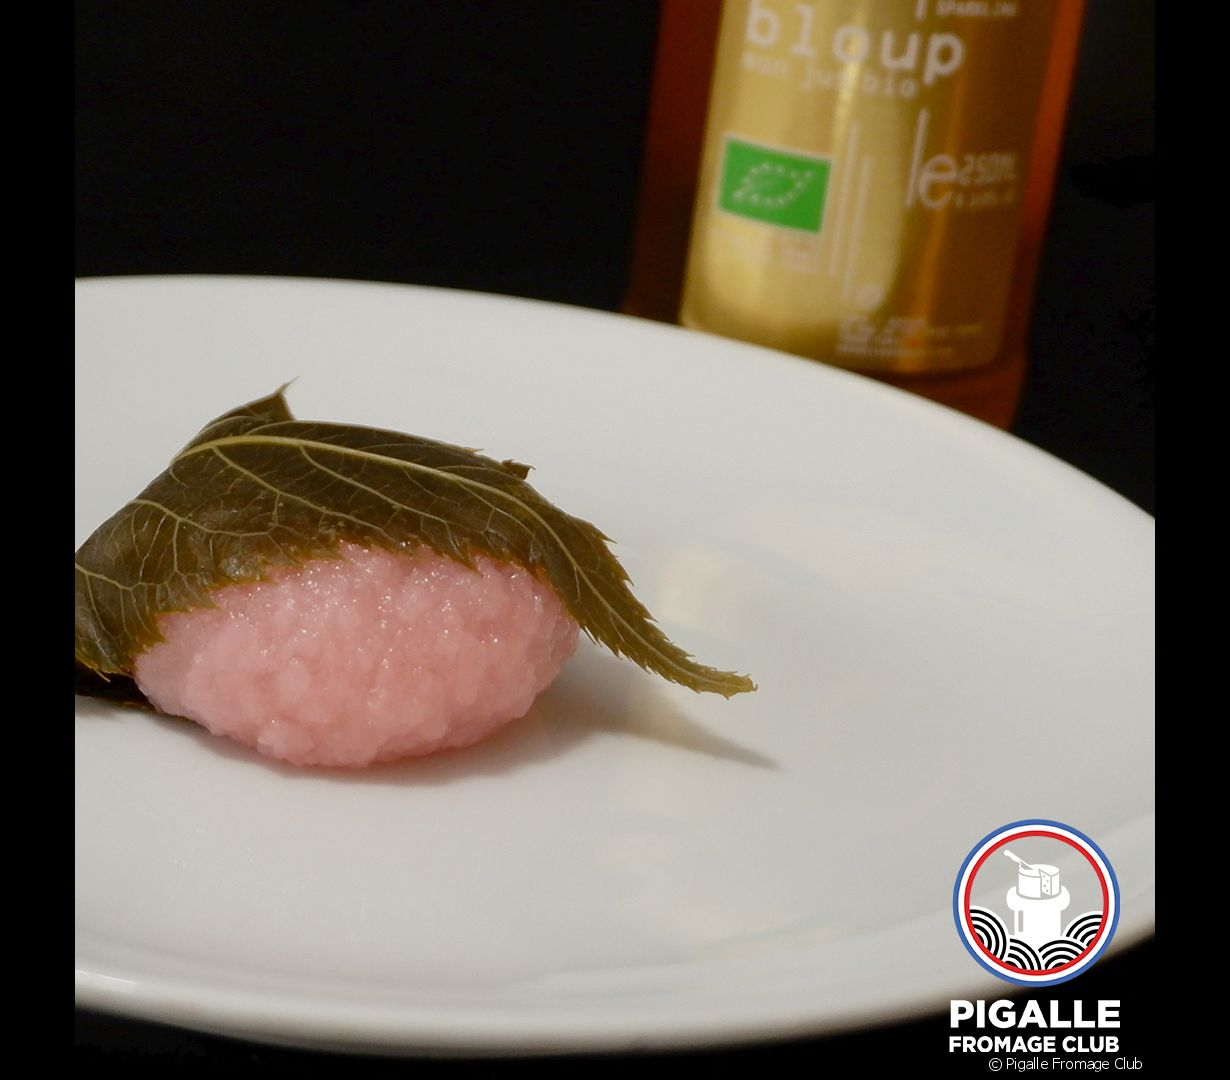 Pigalle Fromage Club, 35 Rue Jean-Baptiste Pigalle, 75009 Paris - Photo 18